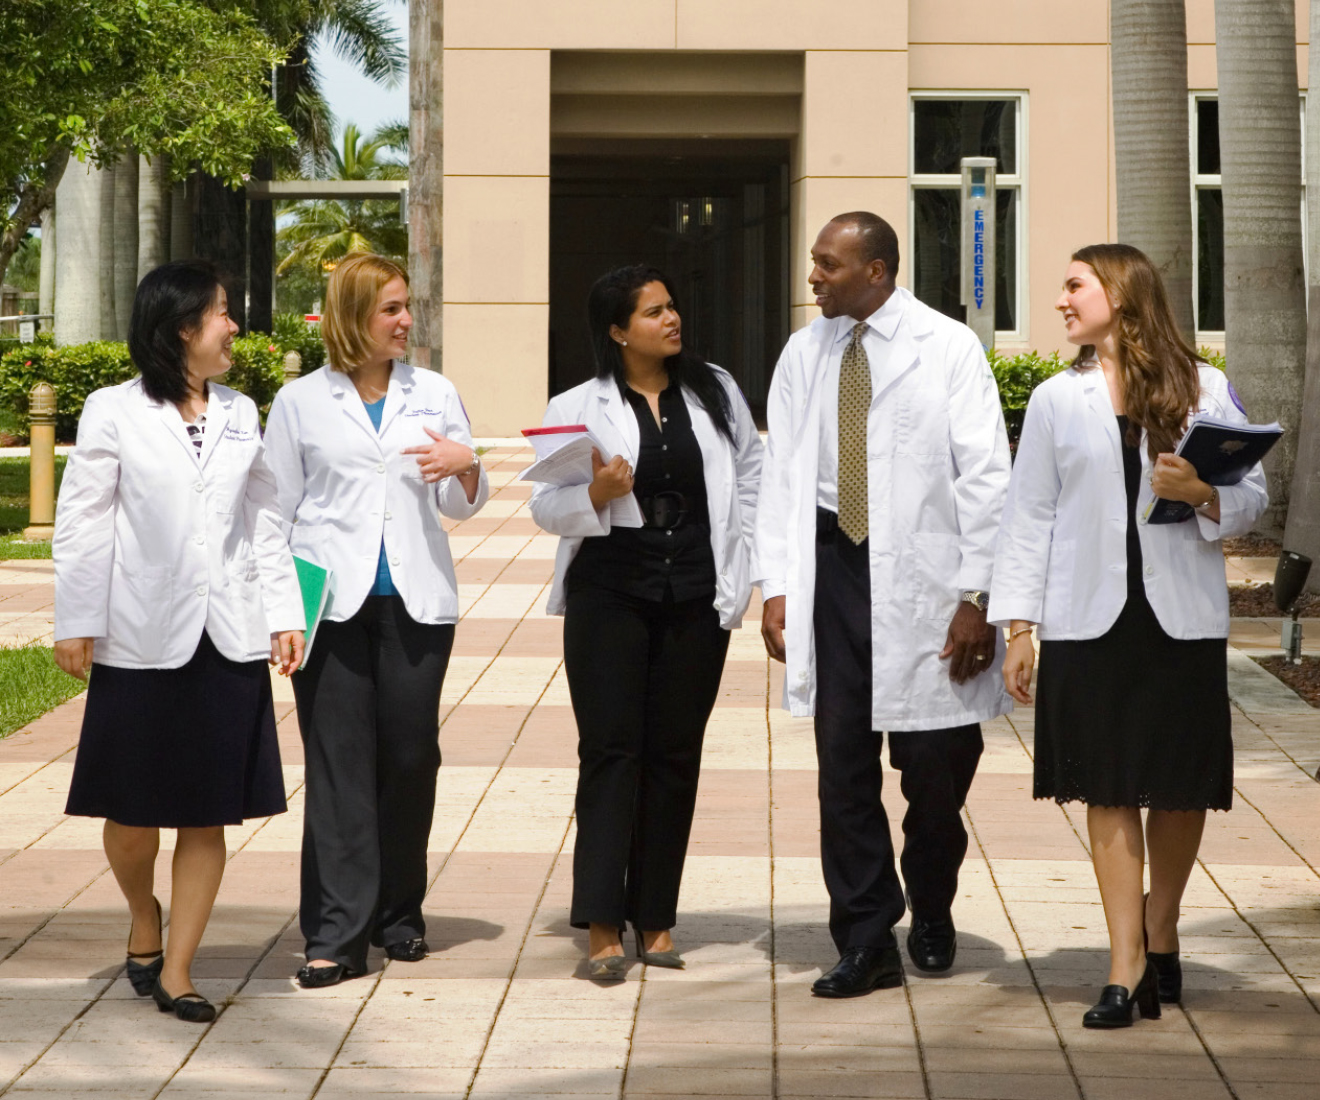 HOPA Recruit a Colleague Program image of pharmacists in white coats talking